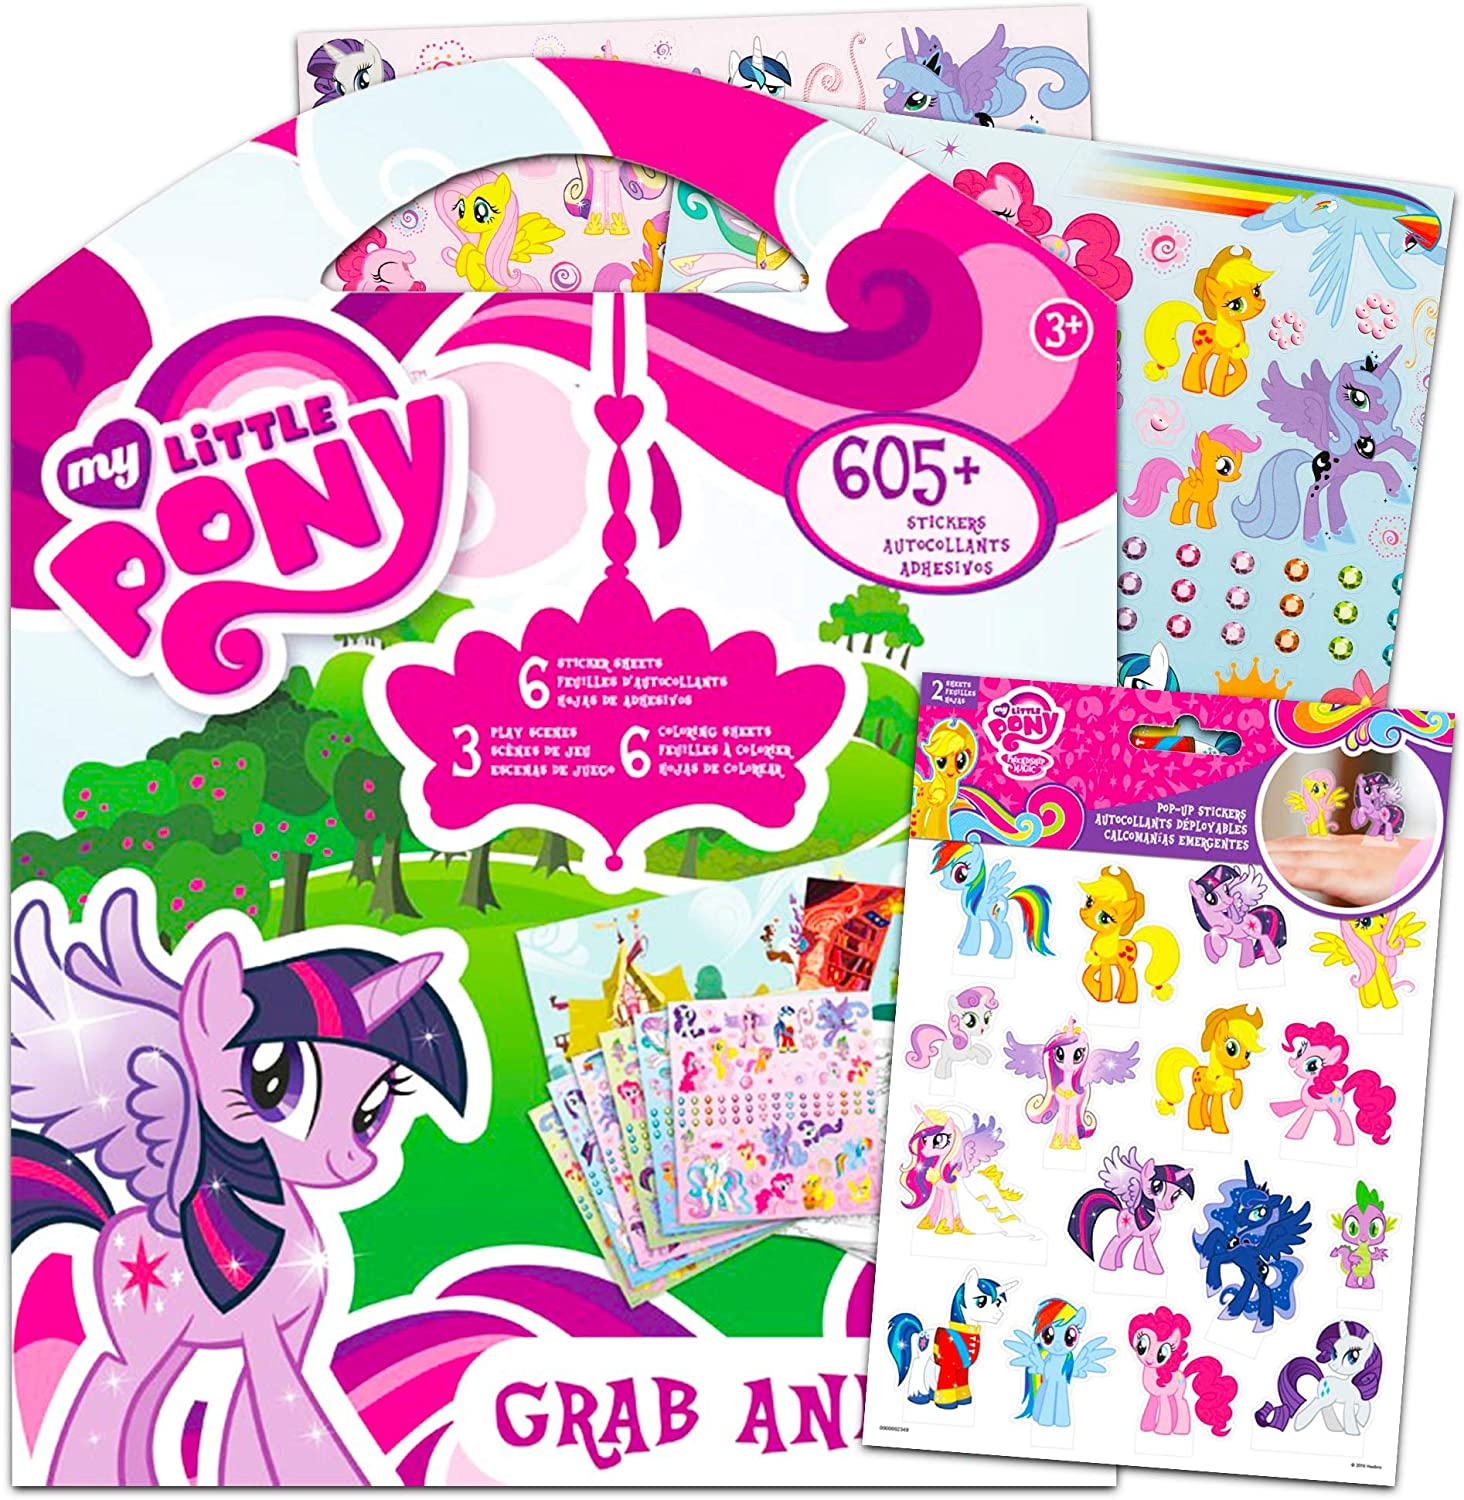 Hasbro My Little Pony Stickers Activity Pretend Play Super Set ~ Over 600 Stickers Including 3D Stand Up Figures with Play Scenes and Coloring Sheets